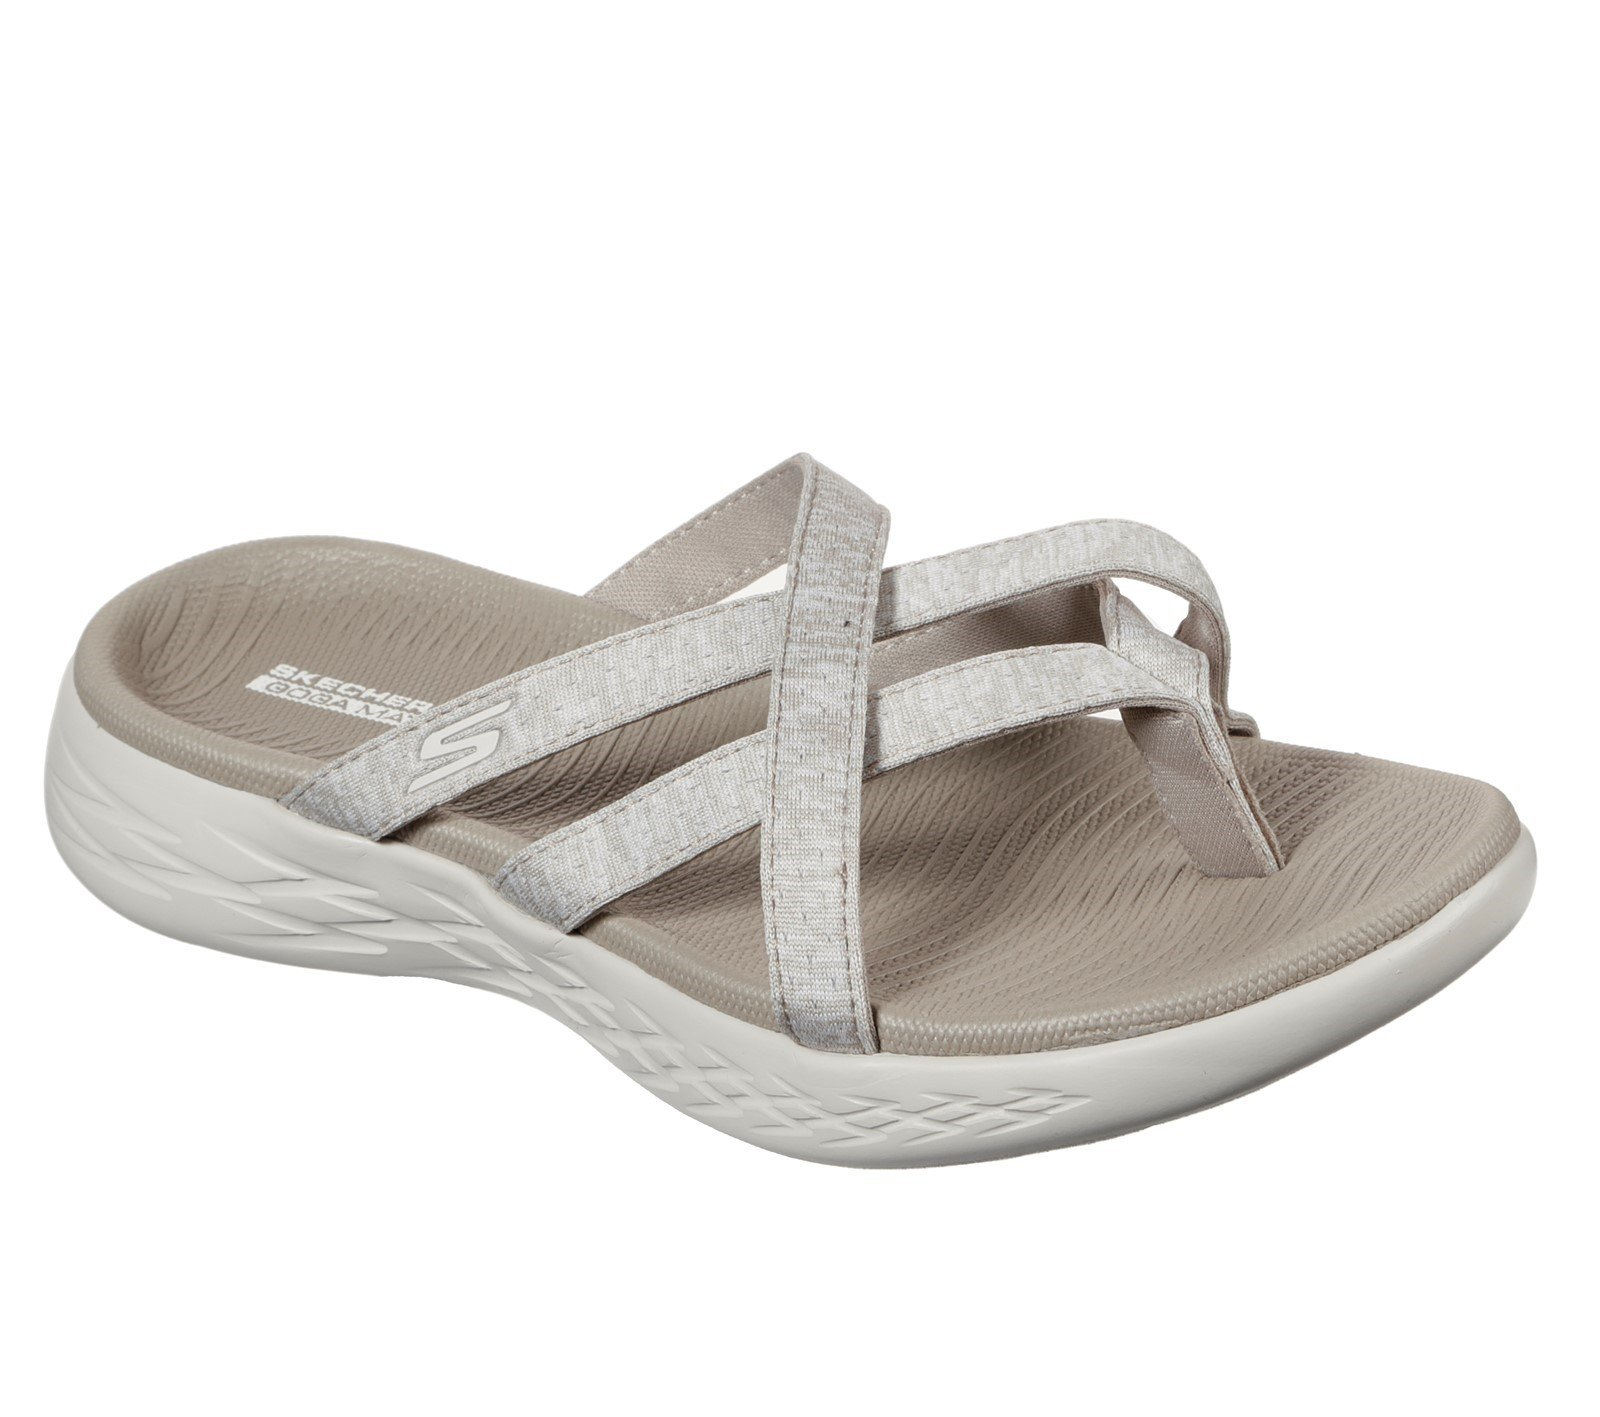 Skechers Women's On the GO 600 Dainty Sandal Taupe 32158 - Taupe 3